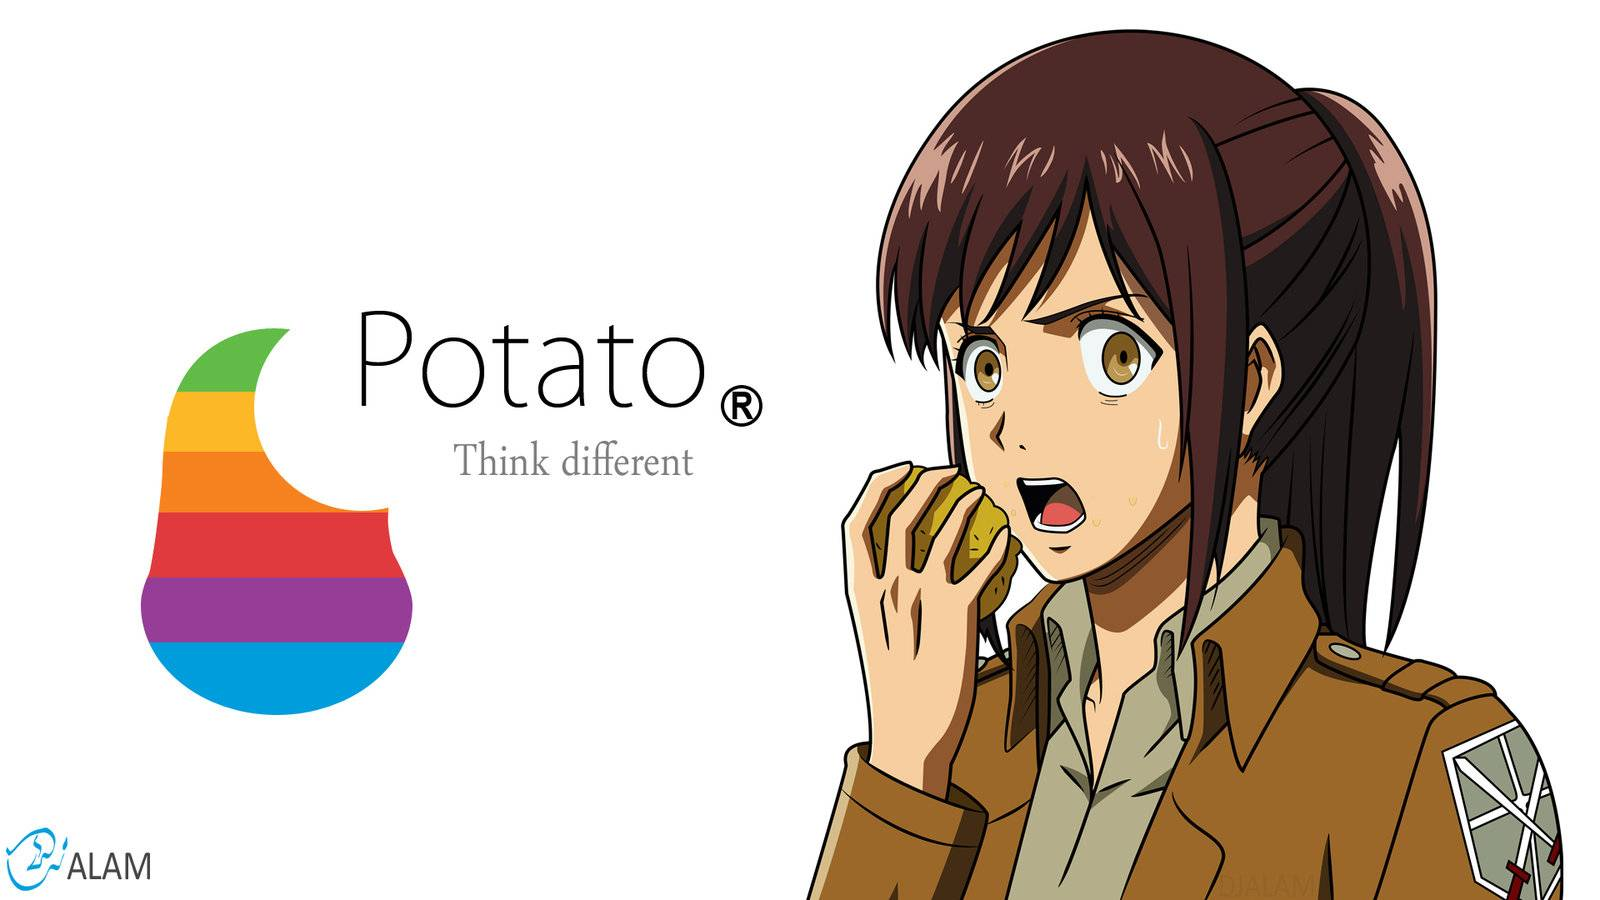 Free Download Potato Girl Attack On Titan Wallpaper 1600x900 For Your Desktop Mobile Tablet Explore 50 Kawaii Potato Wallpaper Cute Kawaii Wallpapers Kawaii Bear Wallpaper Kawaii Girl Wallpaper